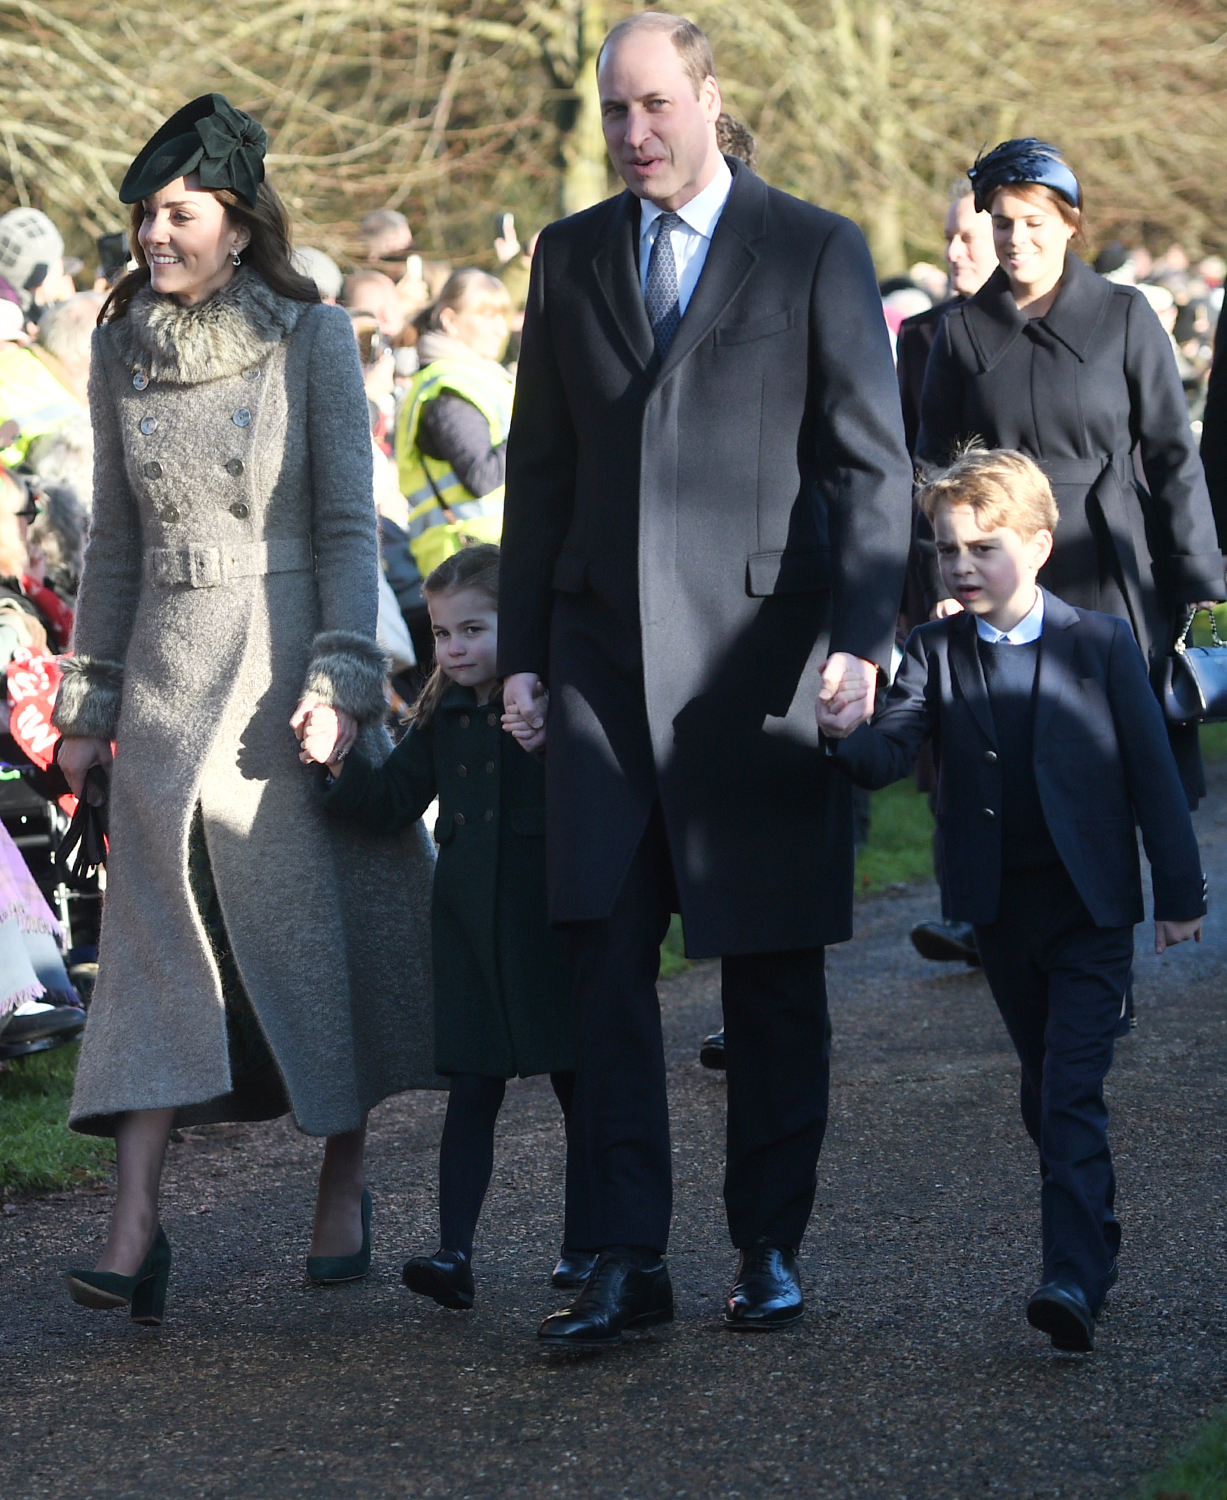 The Duke and Duchess of Cambridge and their children Prince George and Princess Charlotte arriving to attend the Christmas Day morning church service at St Mary Magdalene Church in Sandringham, Norfolk. (Photo by Joe Giddens/PA Images via Getty Images)